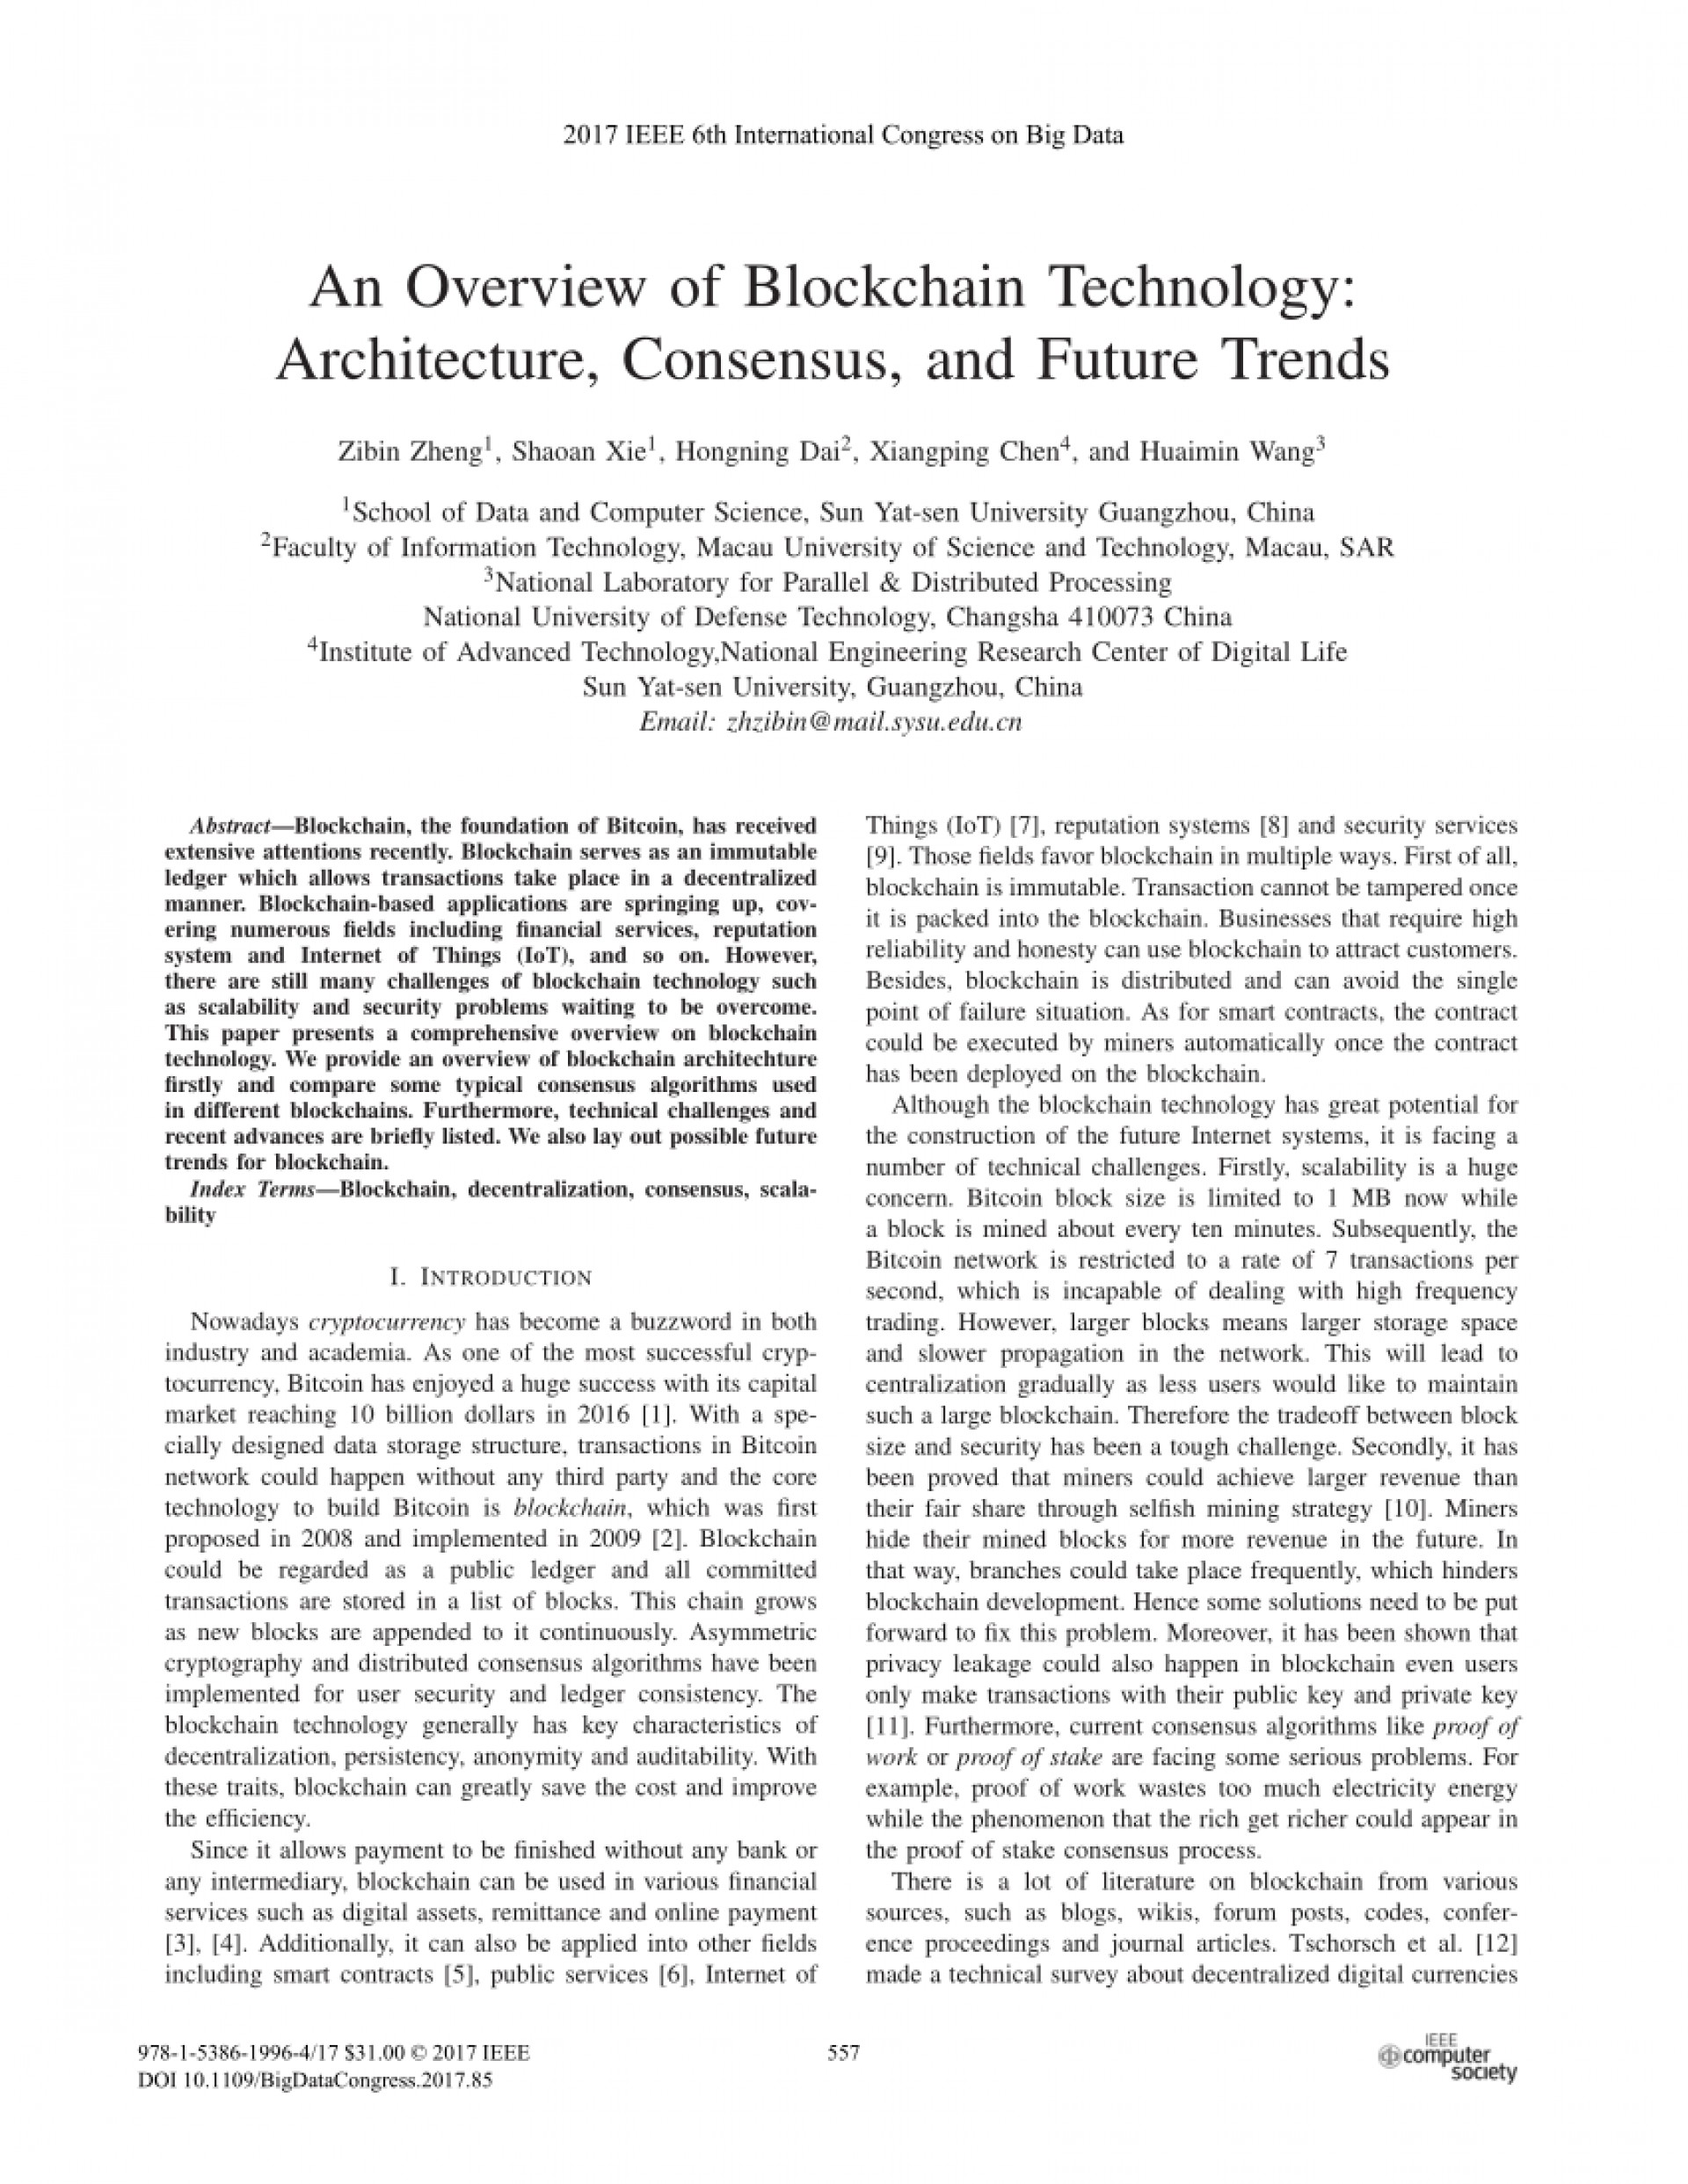 002 Research Paper Blockchain Technology Papers Incredible 1920